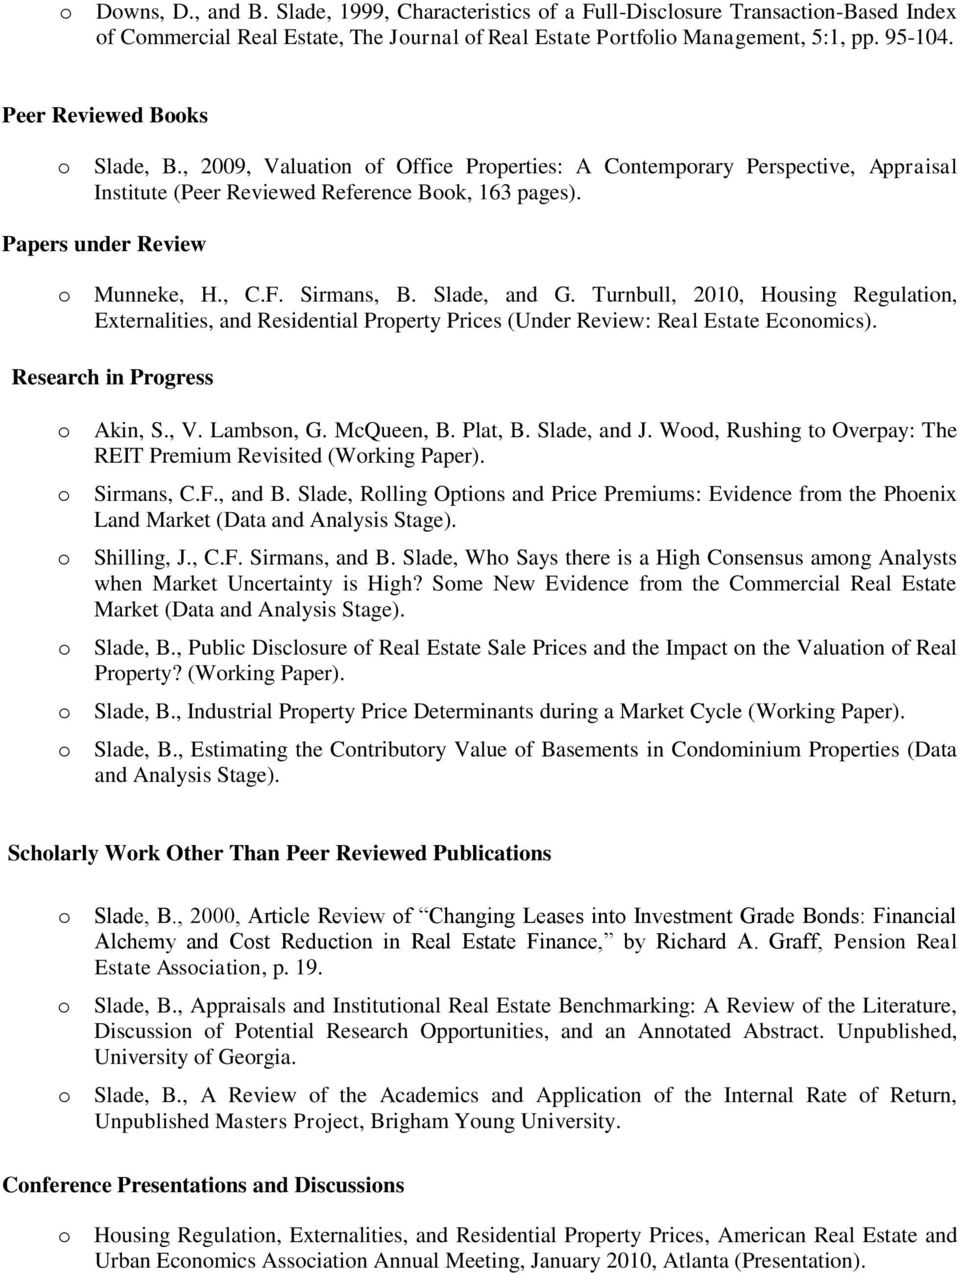 Slade, and G. Turnbull, 2010, Husing Regulatin, Externalities, and Residential Prperty Prices (Under Review: Real Estate Ecnmics). Research in Prgress Akin, S., V. Lambsn, G. McQueen, B. Plat, B.